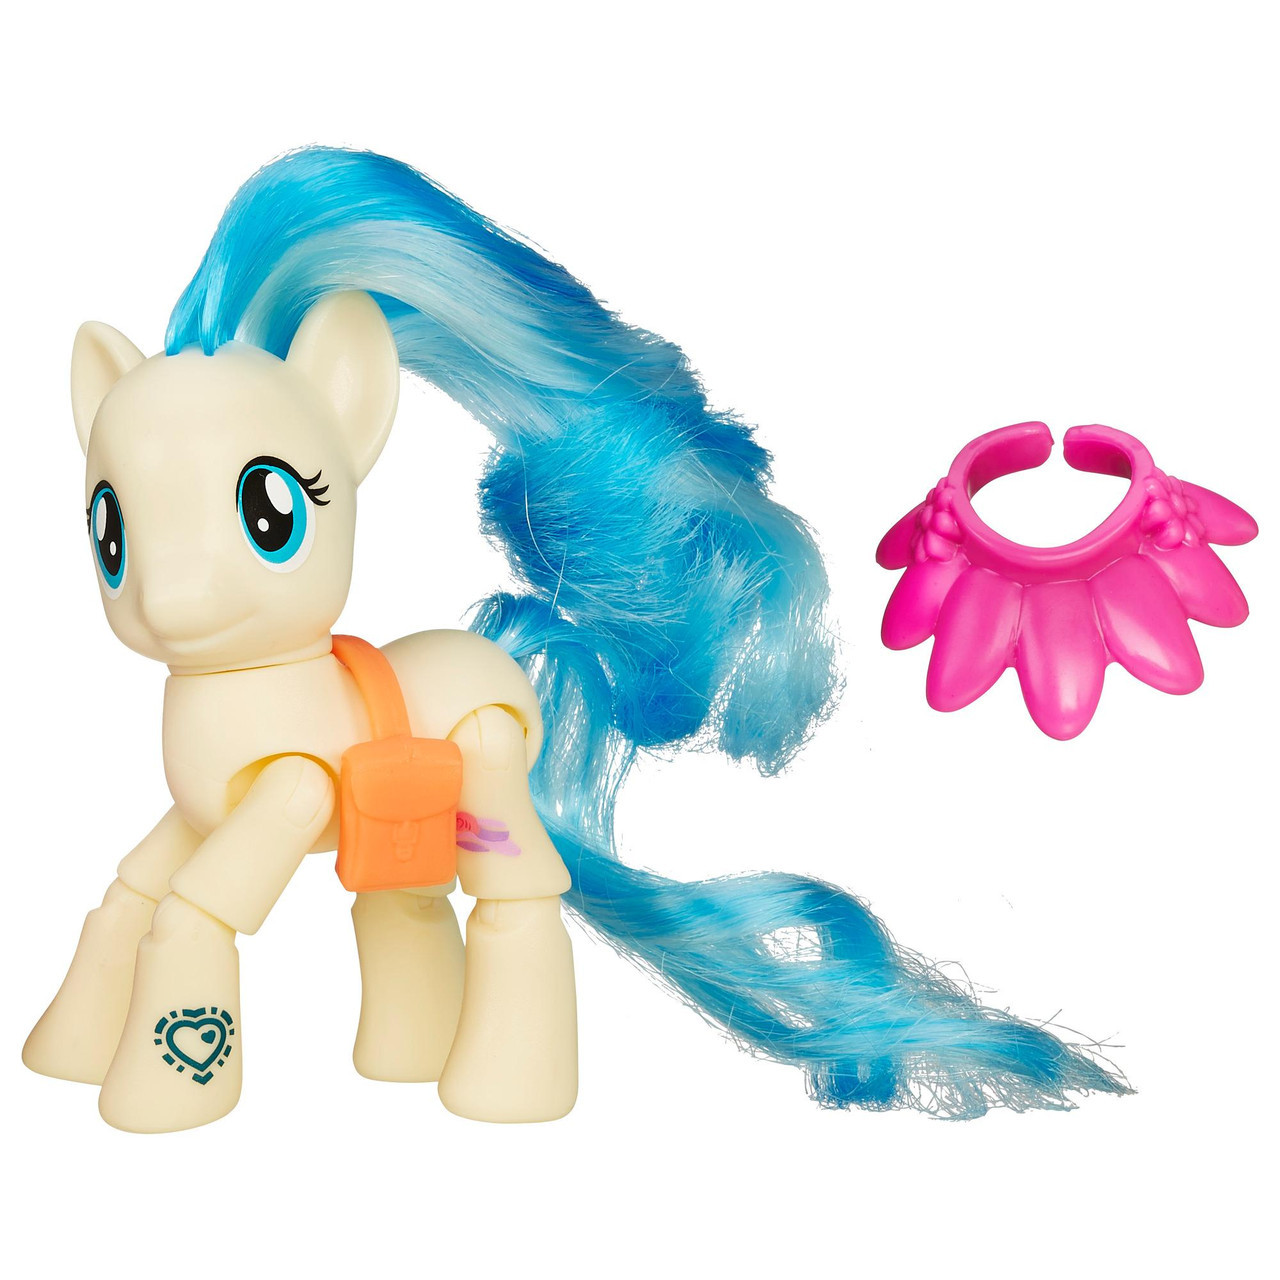 Пони фигурка Коко Помель с артикуляцией Май Литл Пони My Little Pony Hasbro B5679